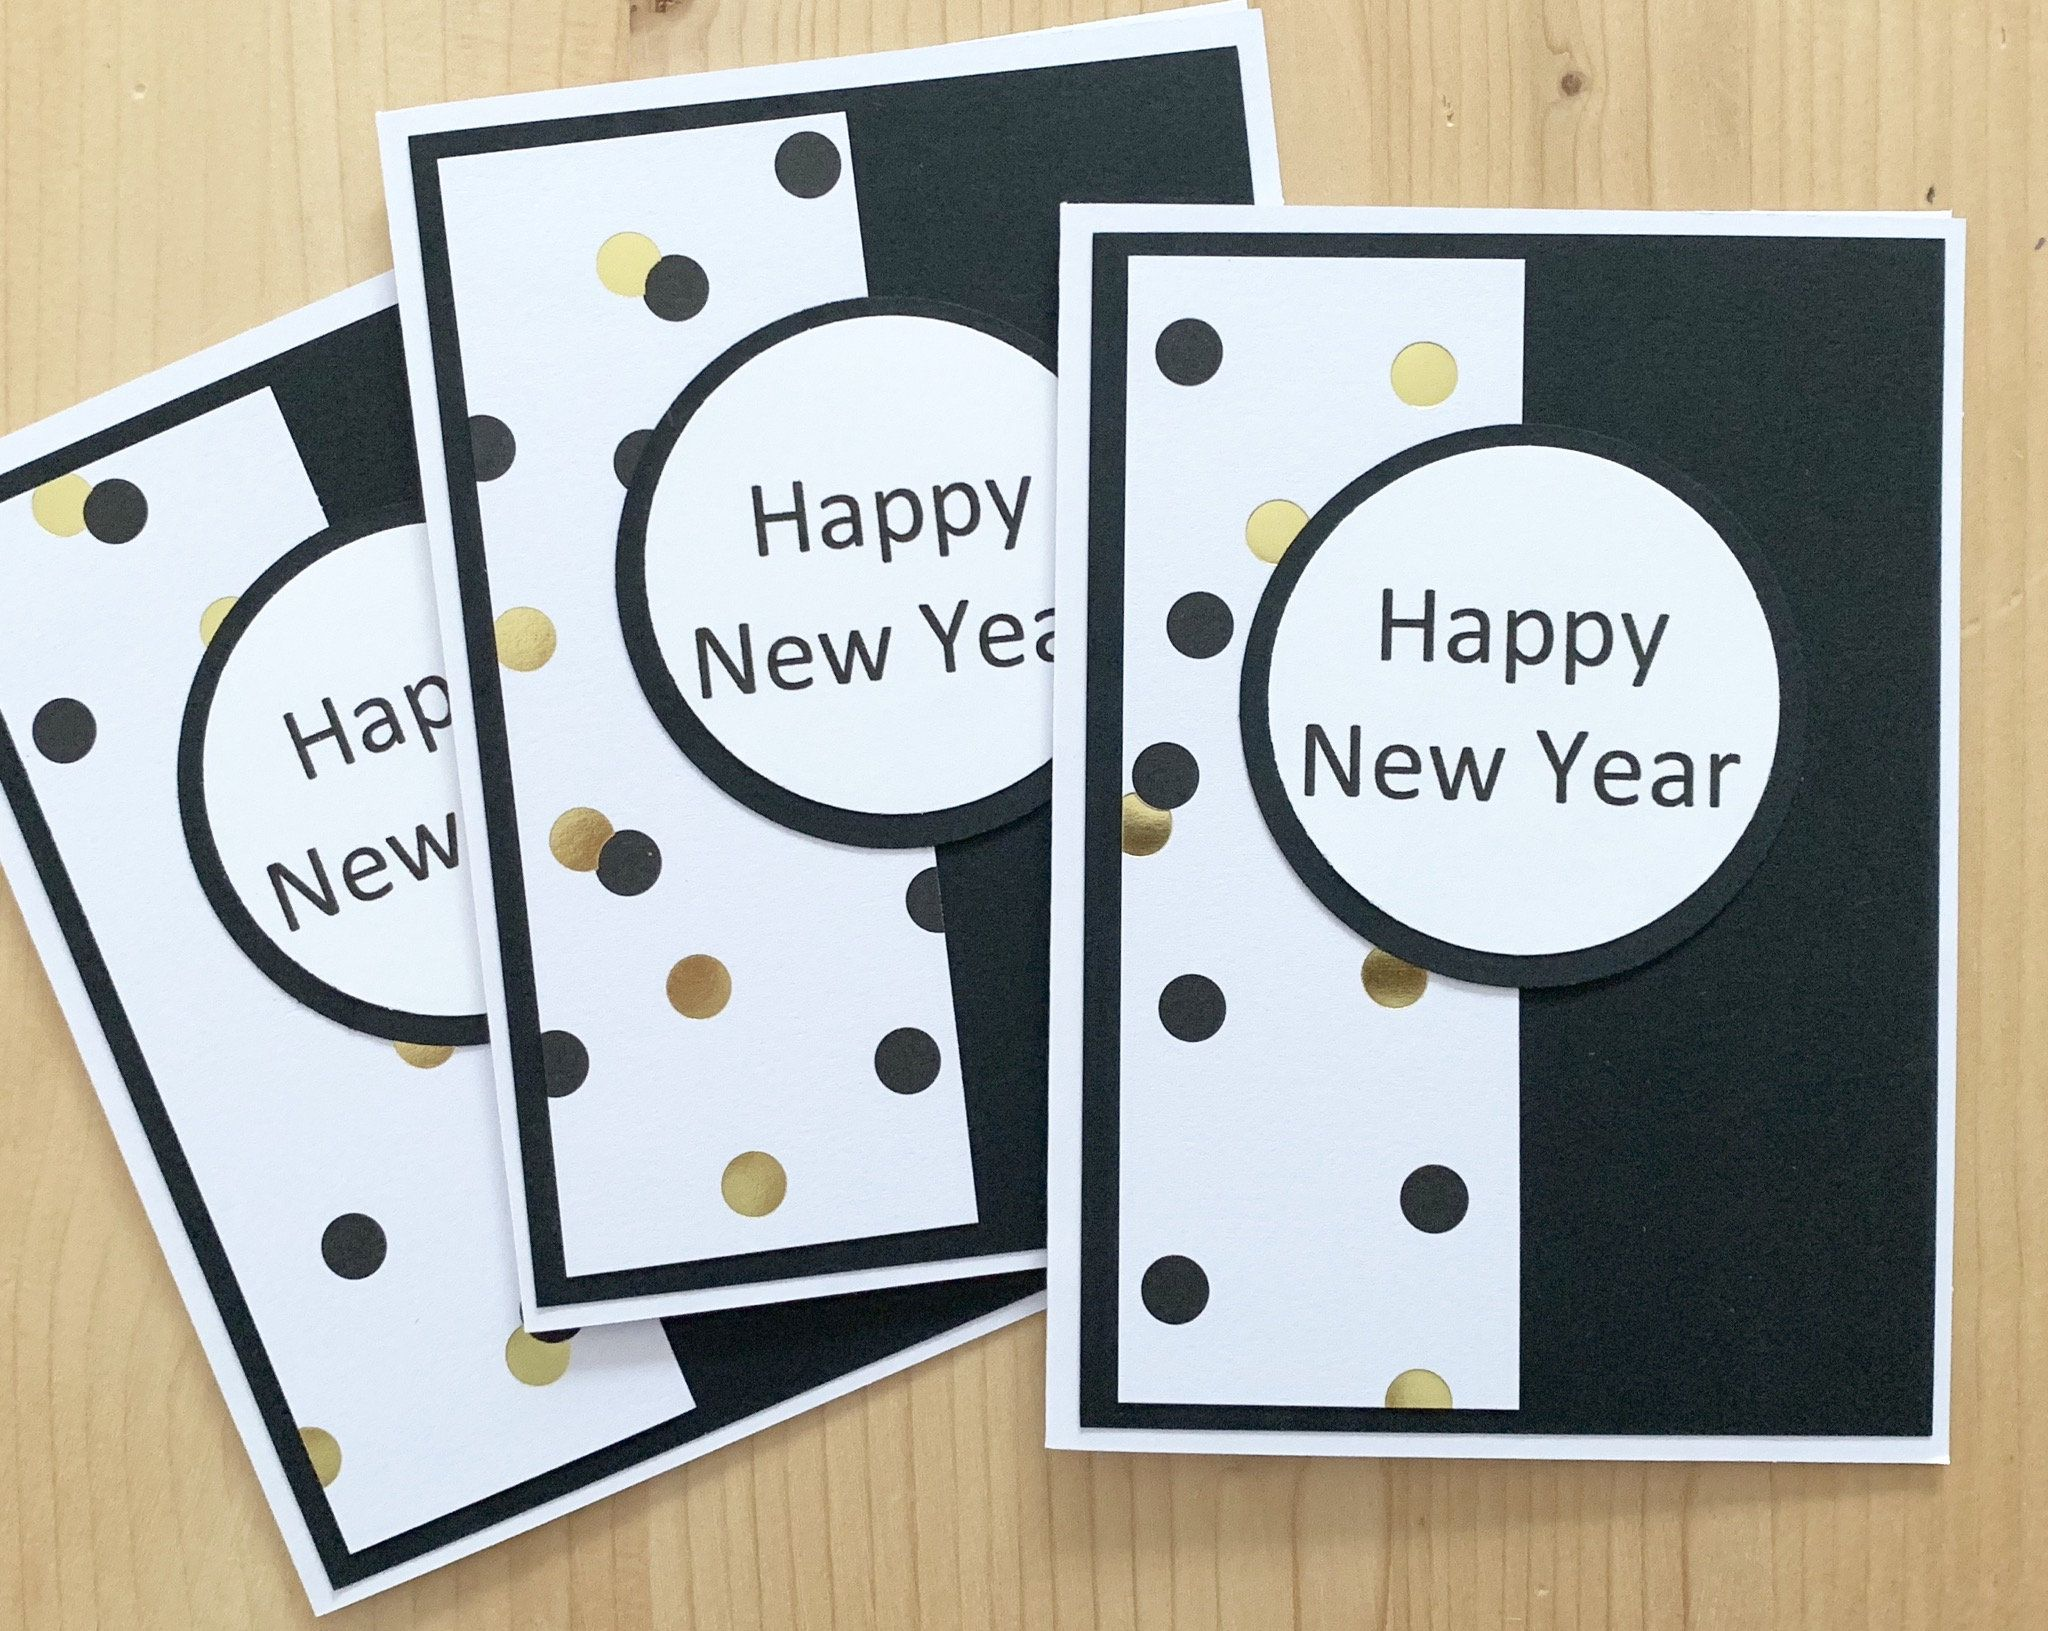 Items similar to Happy New Year Greeting Cards. Handmade Confetti New Years Cards. Blank 2020 Cards on Etsy